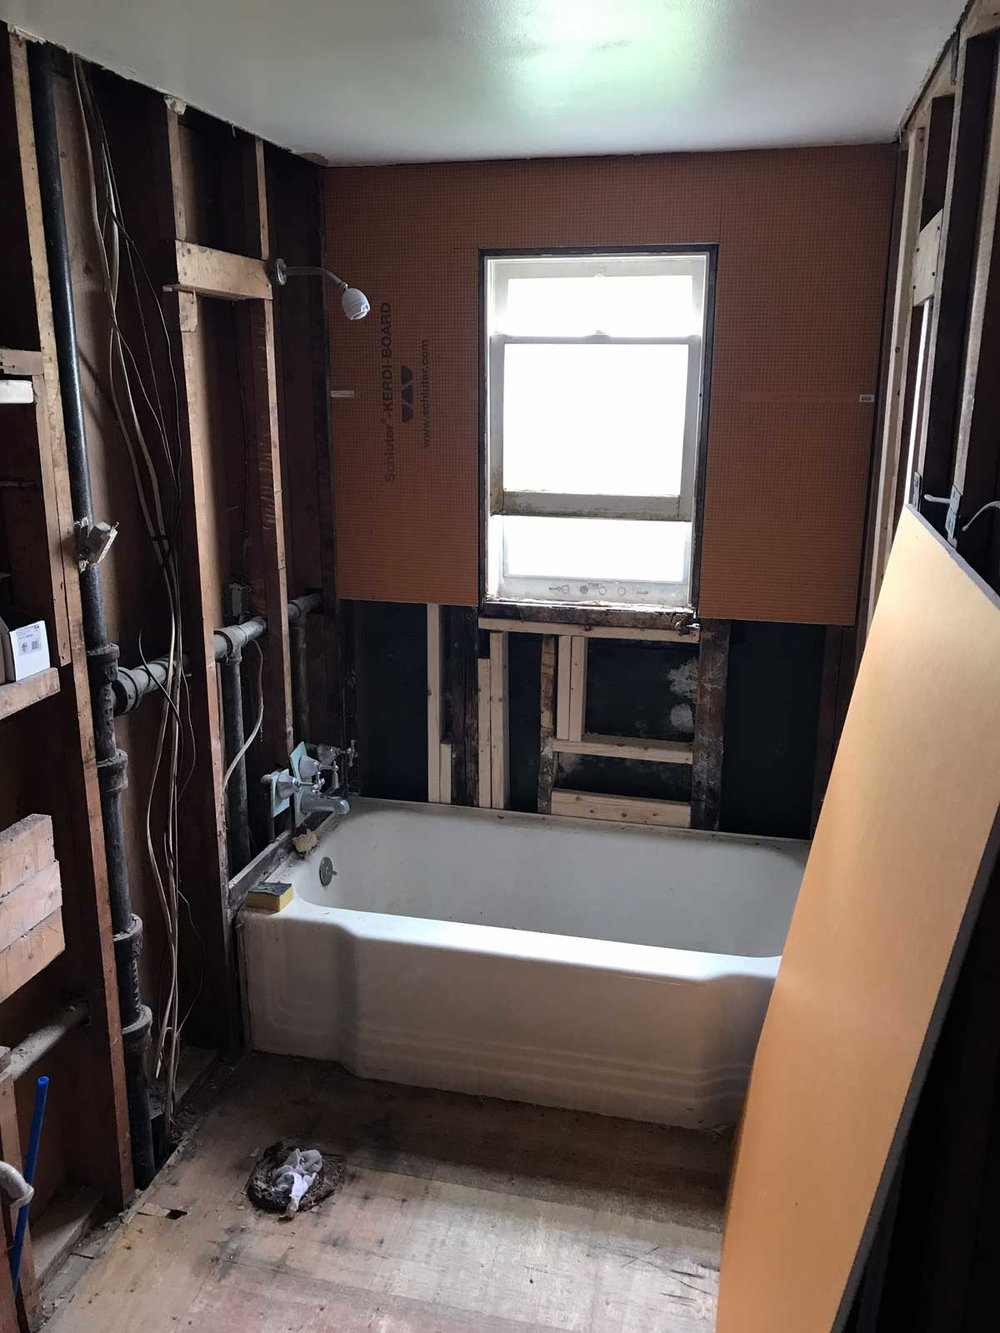 15-Day-Bathroom-Renovation-10.jpg